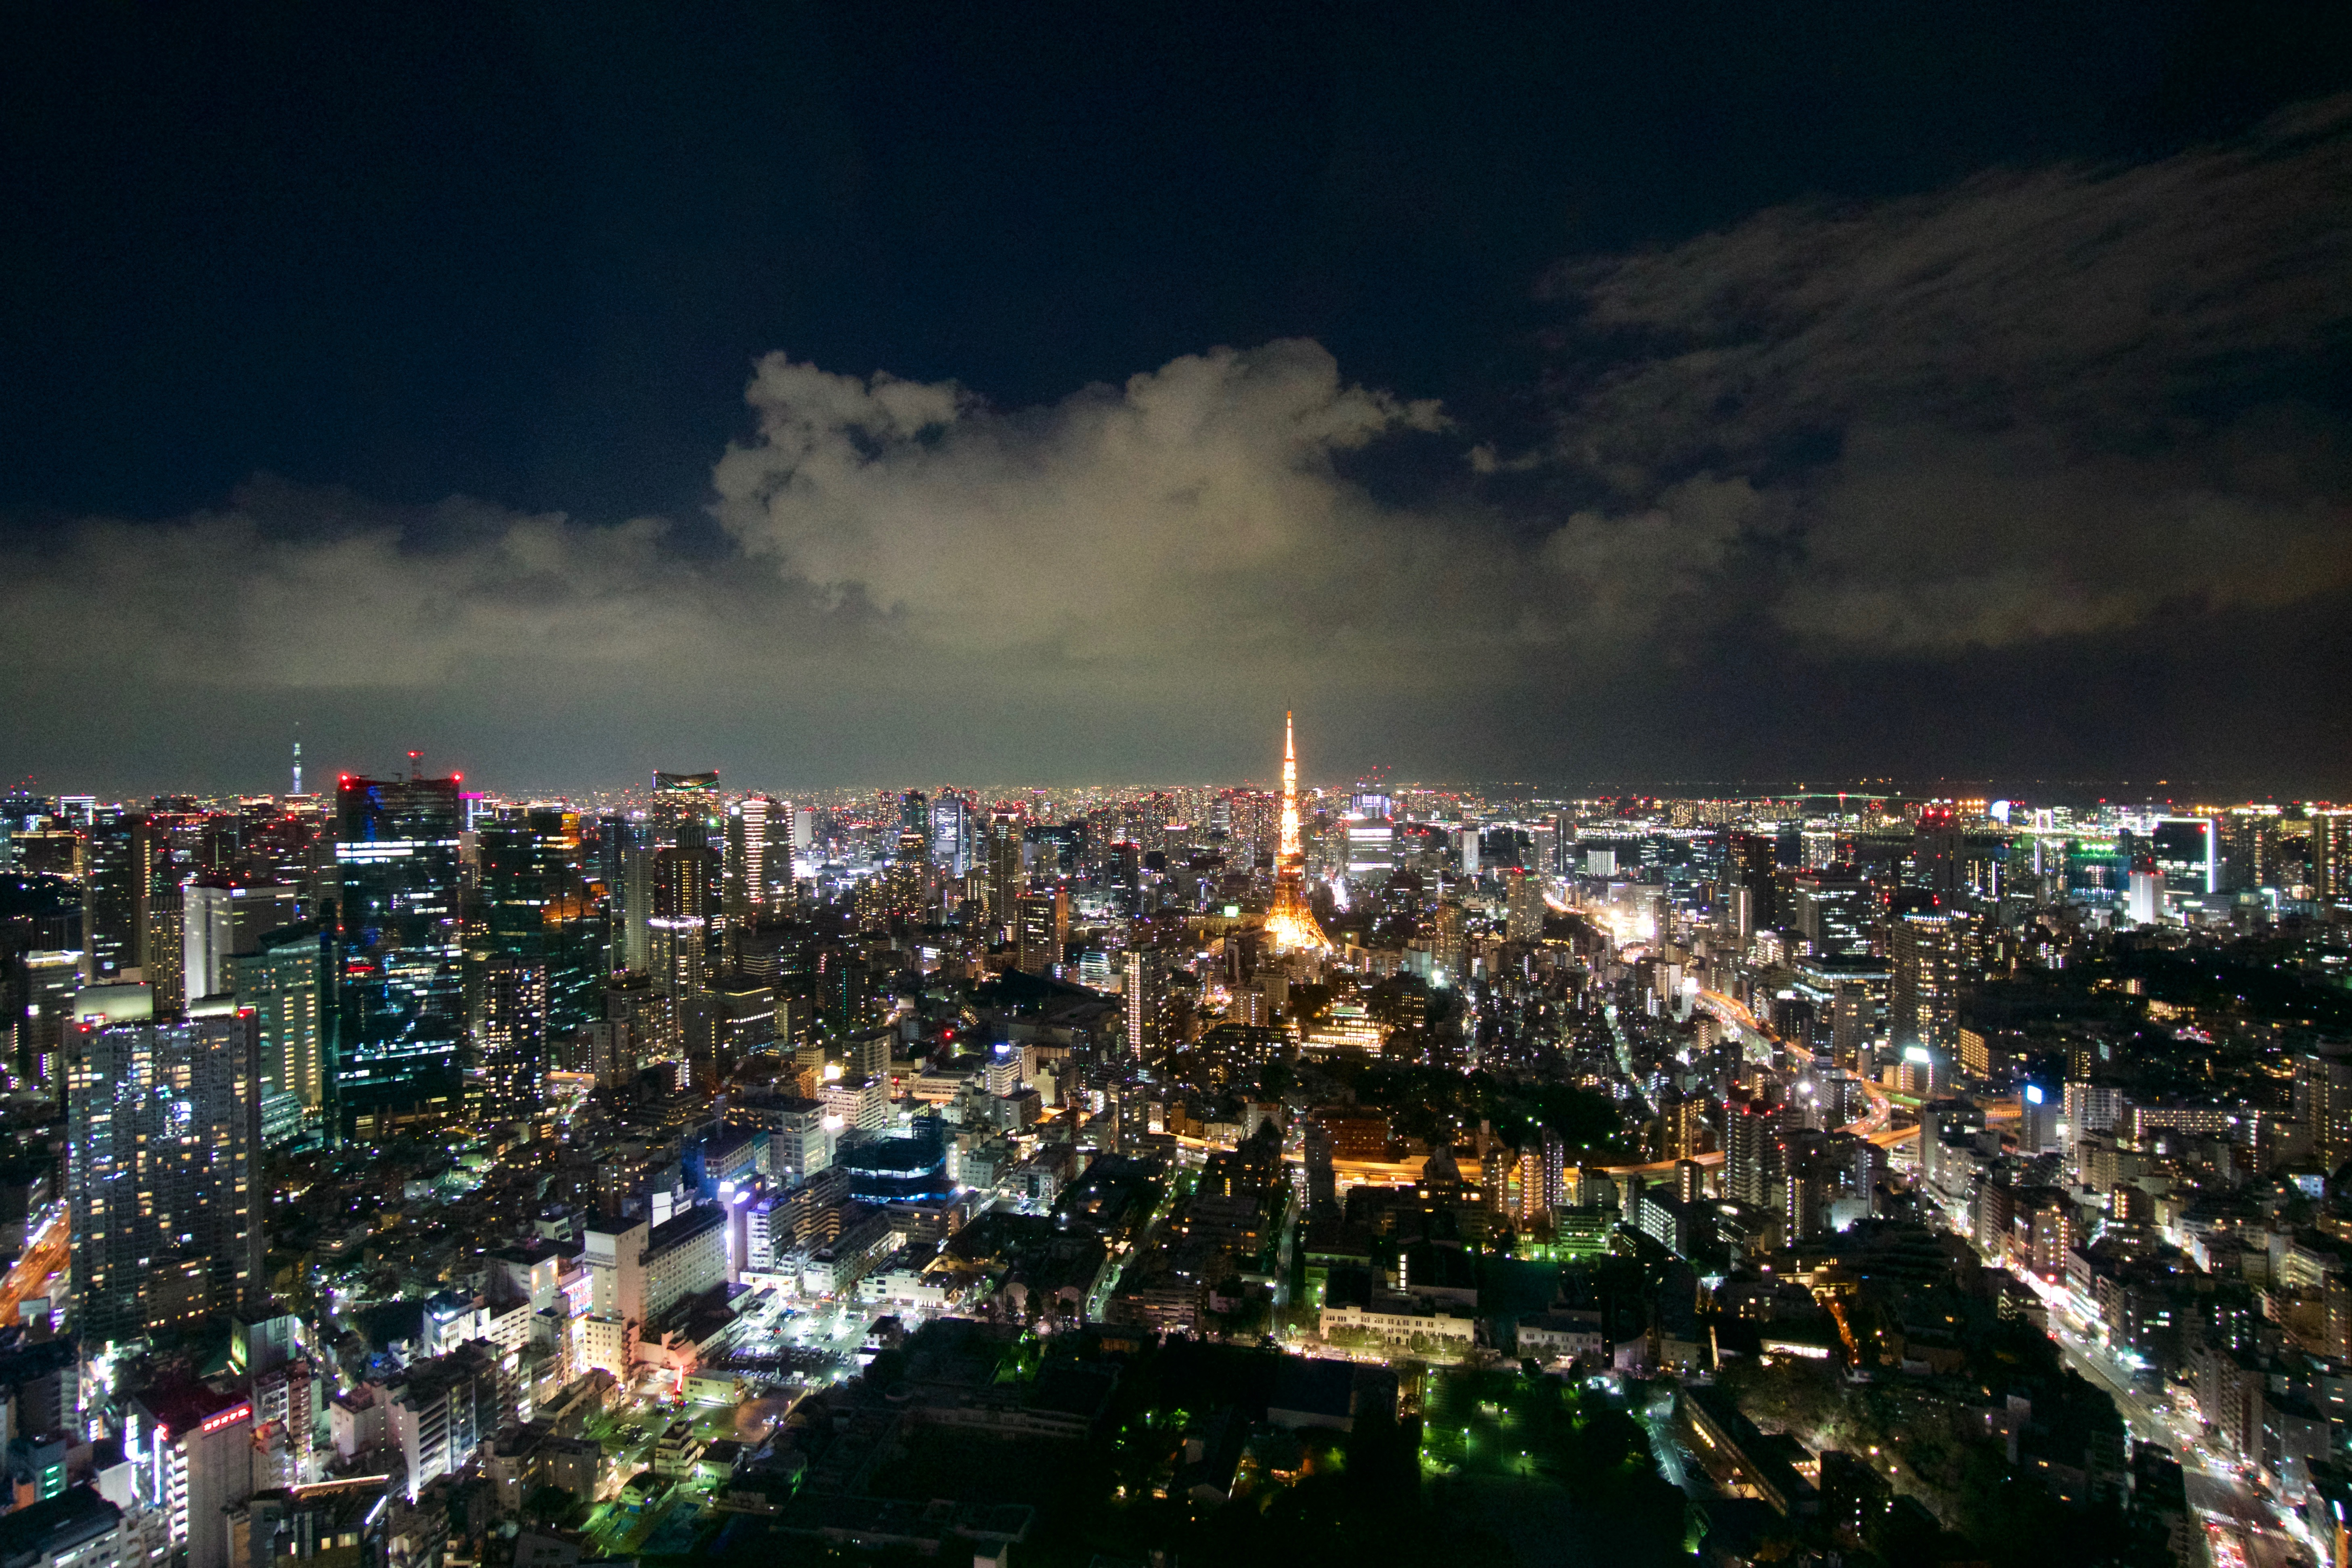 Views of Tokyo's lights at night from the Mori Museum of Art